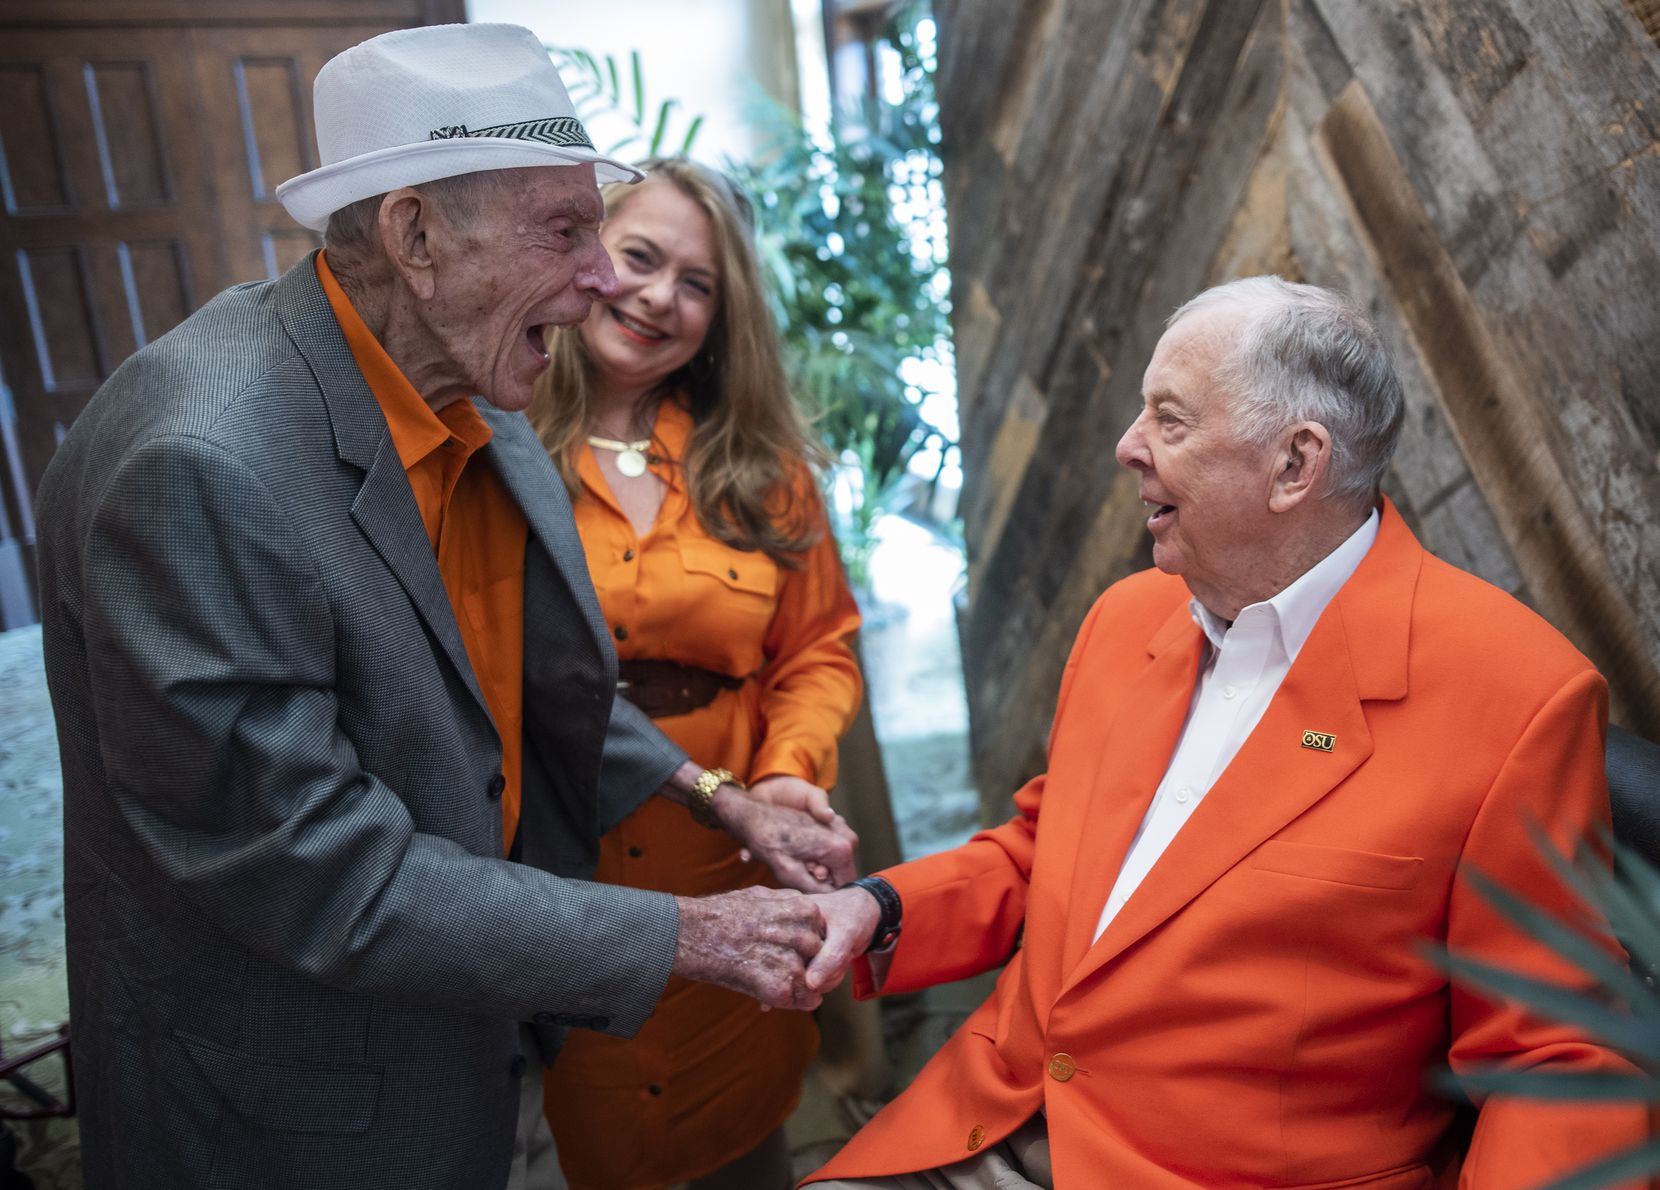 Jim Moeller (left) greeted Pickens at his 90th birthday party at the Dallas Country Club on May 19, 2018.  They went to junior high together in Holdenville.